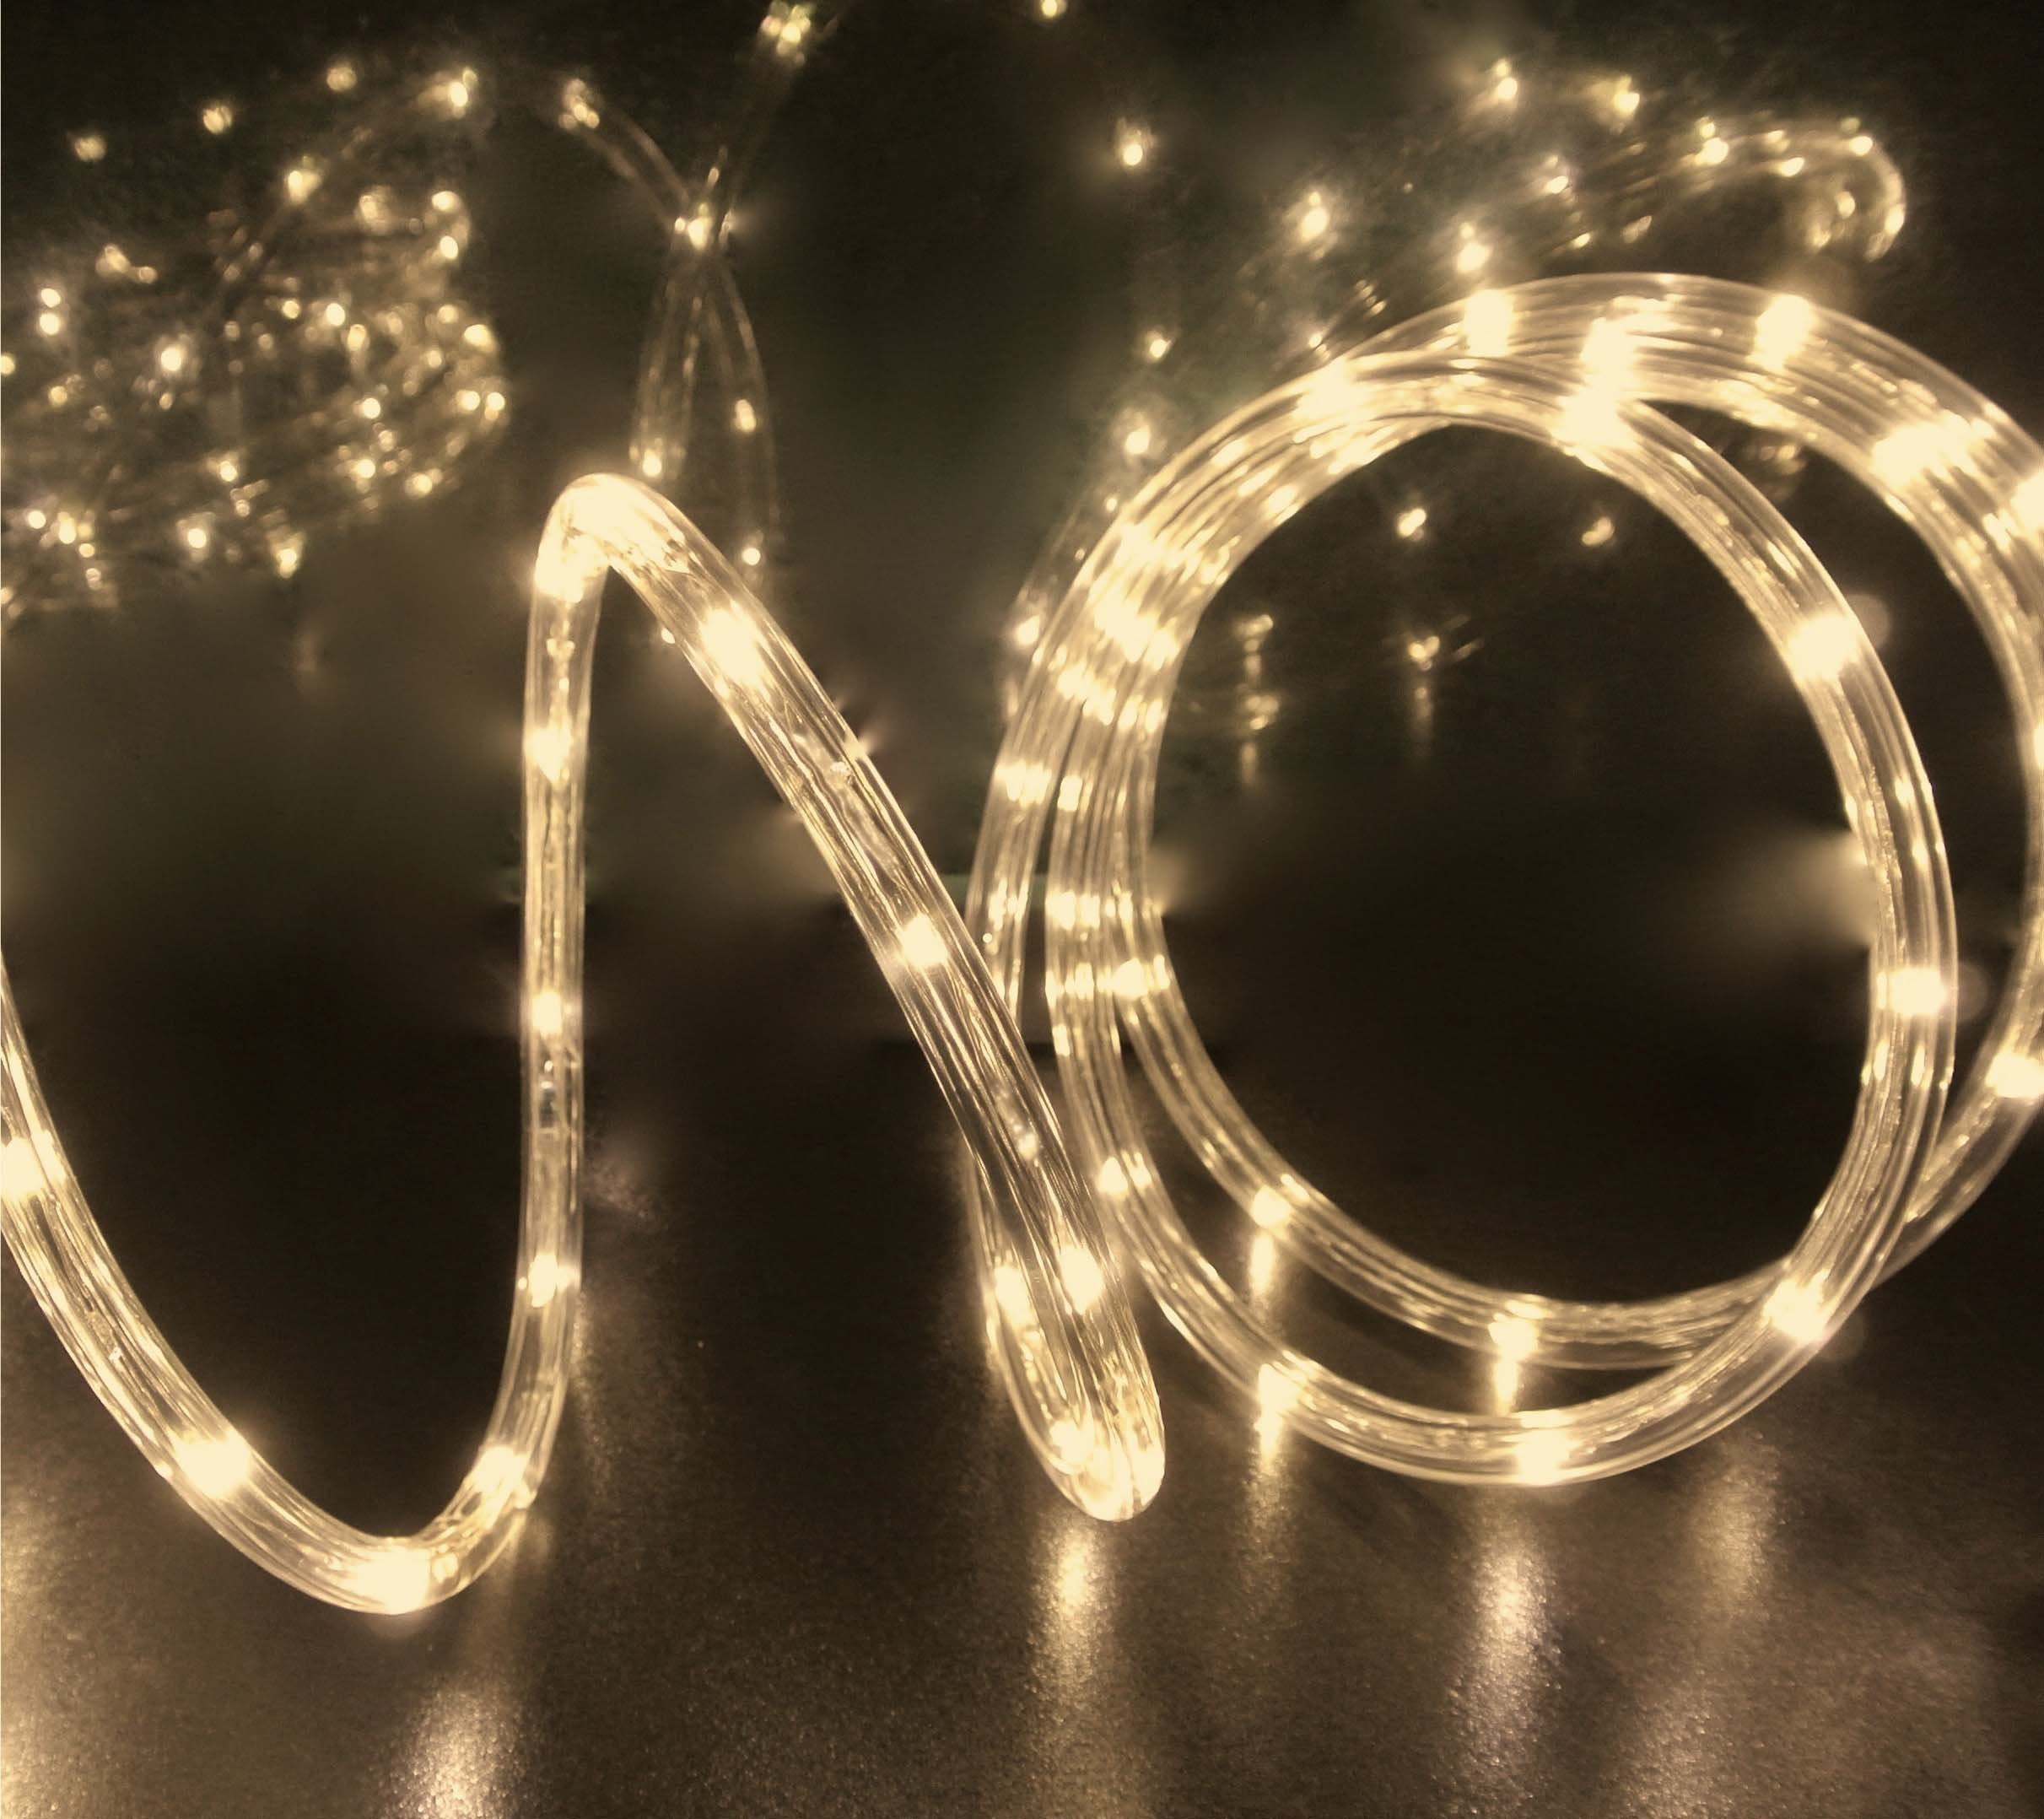 Izzy Creation 18FT Warm White LED Flexible Rope Lights Kit For Indoor / Outdoor Lighting, Home, Garden, Patio, Shop Windows, Trees, New Year, Wedding, Party, Event